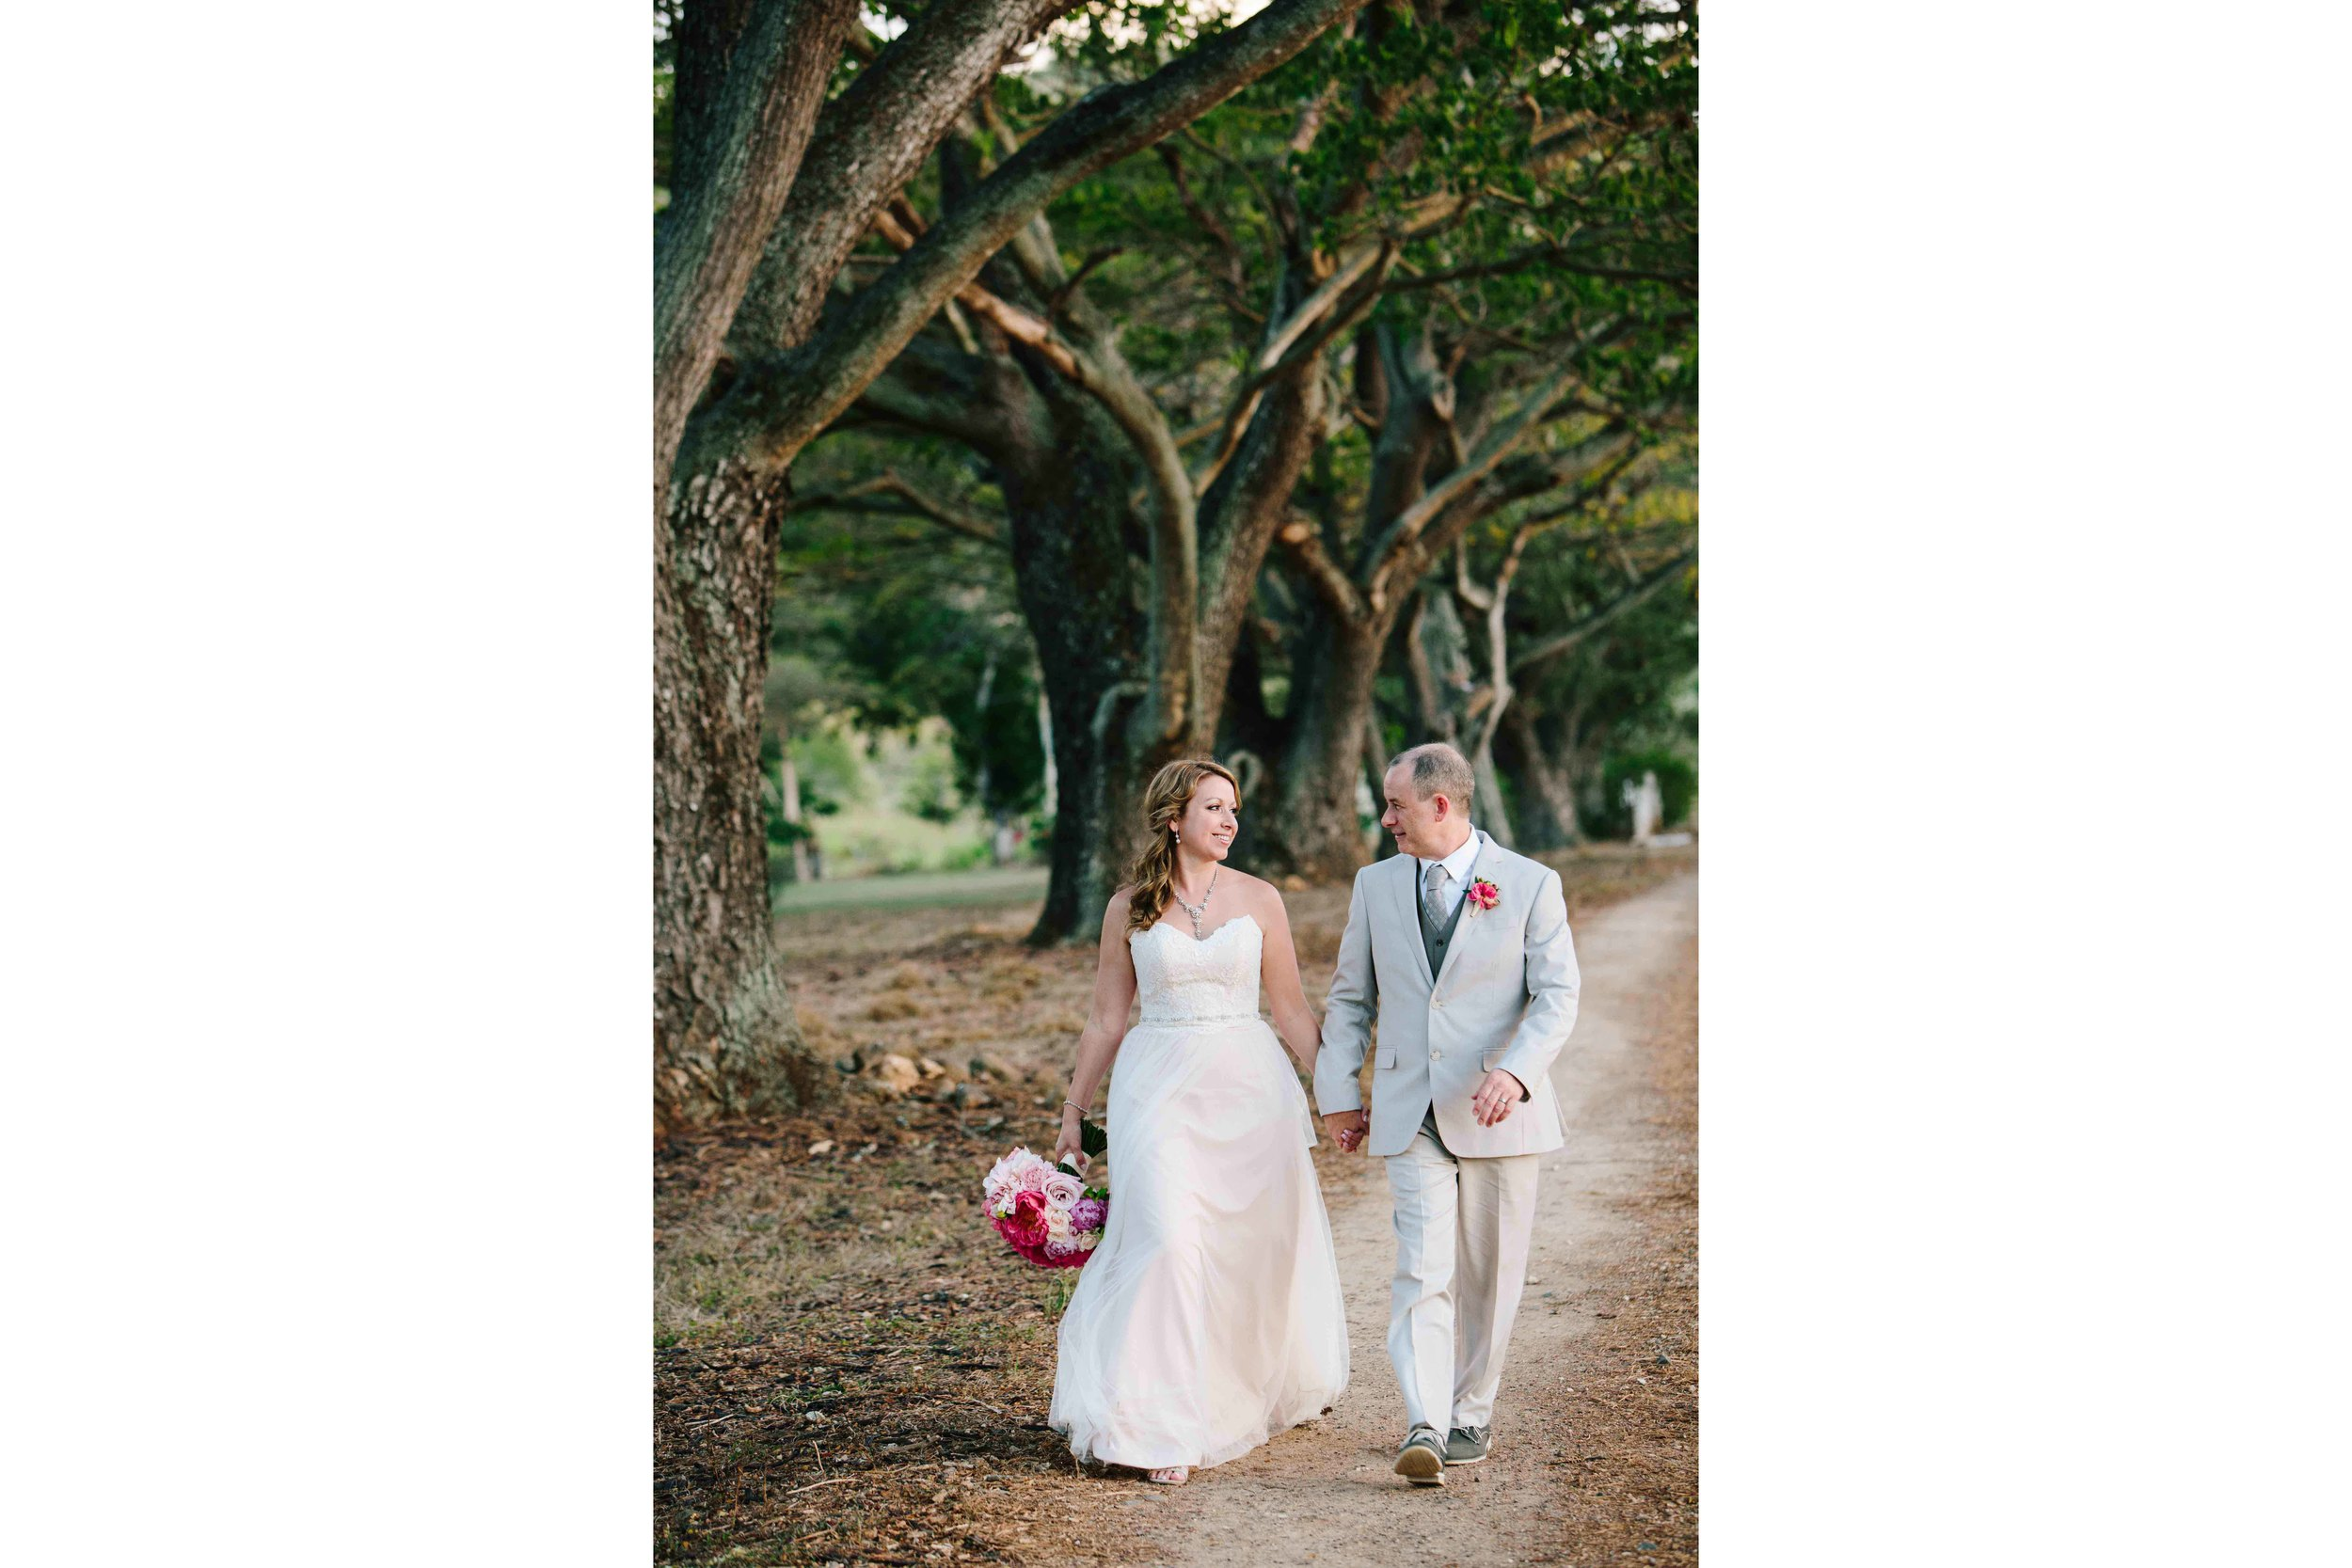 Candid Wedding Photography at Dillingham Ranch